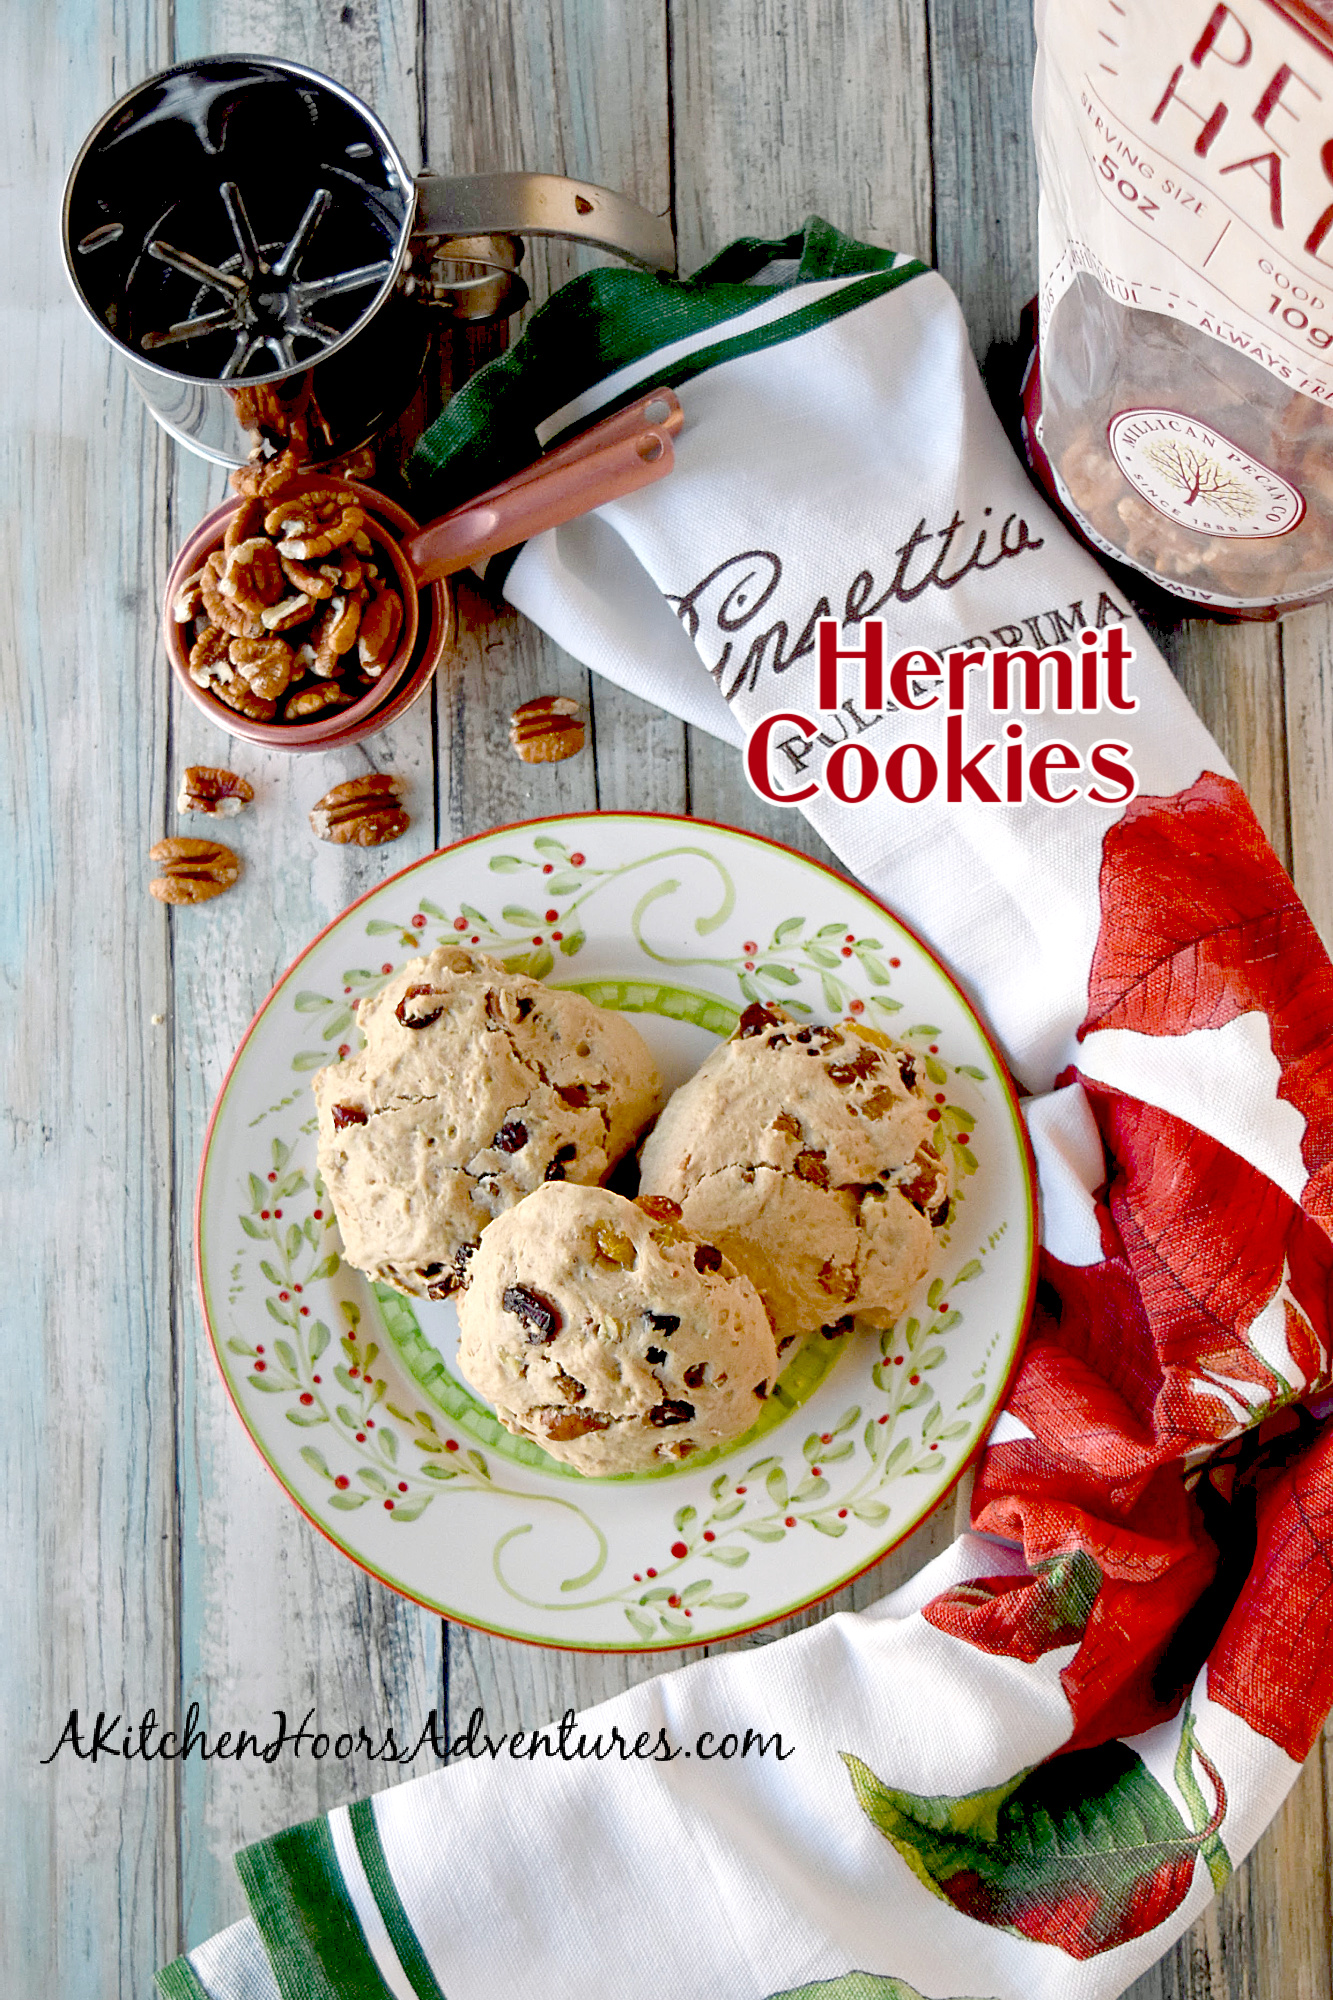 Hermit Cookies are hearty, packed with dried fruits and nuts, and perfect for dipping into coffee or tea.  More scone like than cookie, they're slightly sweet with a soft, bread like texture.  And perfectly delicious! #ChristmasCookies